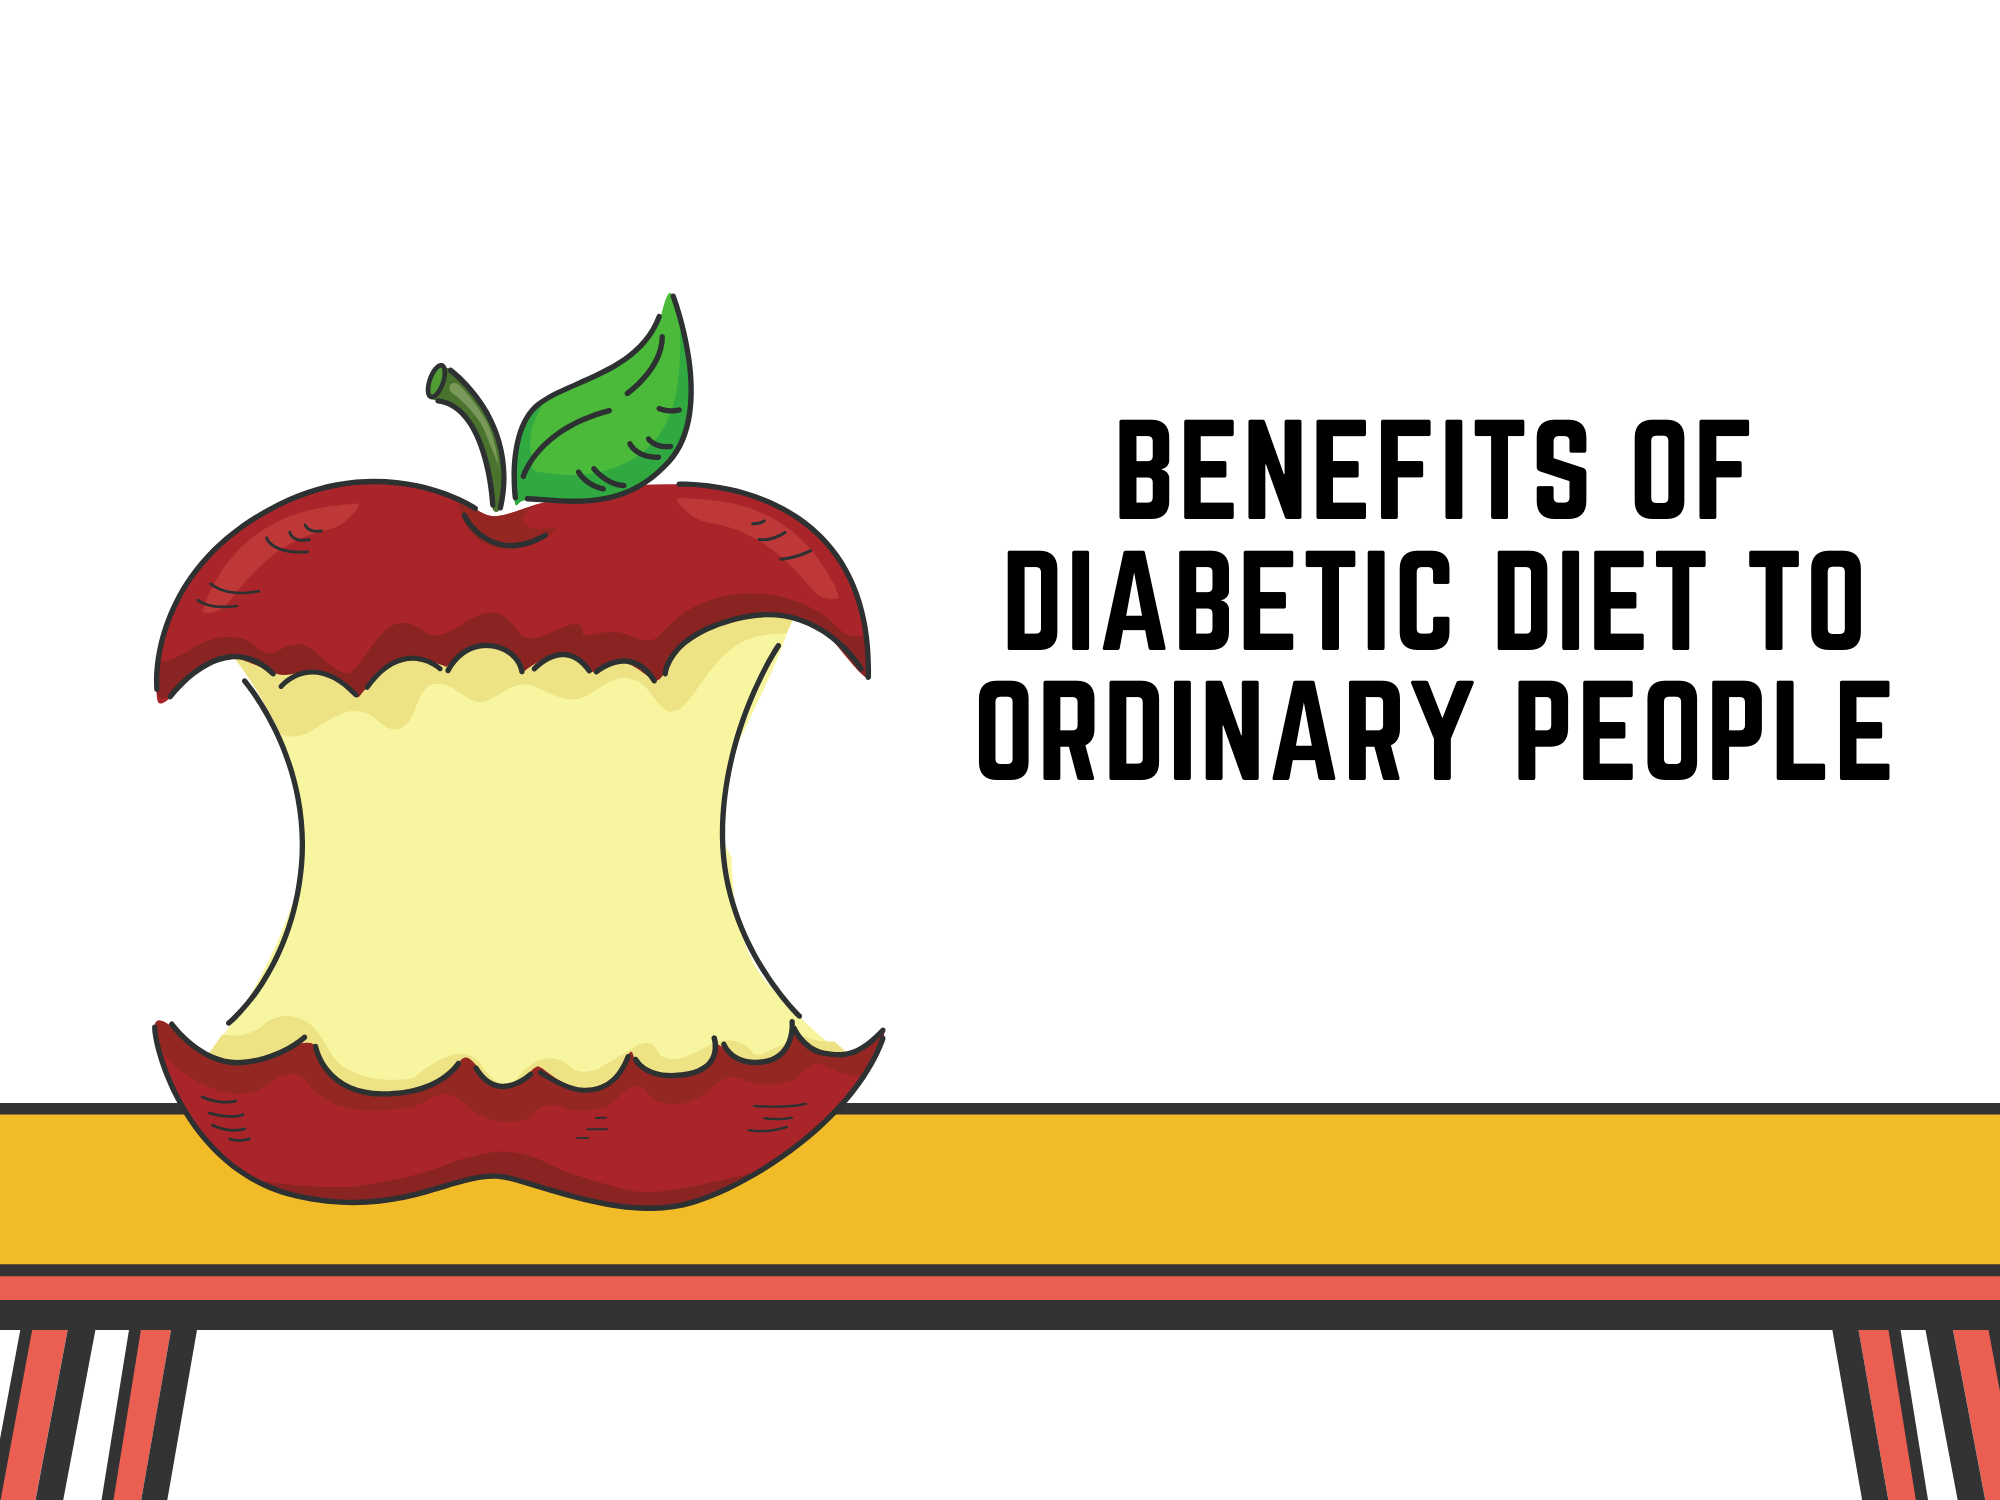 Benefits-of-Diabetic-Diet-To-Ordinary-People